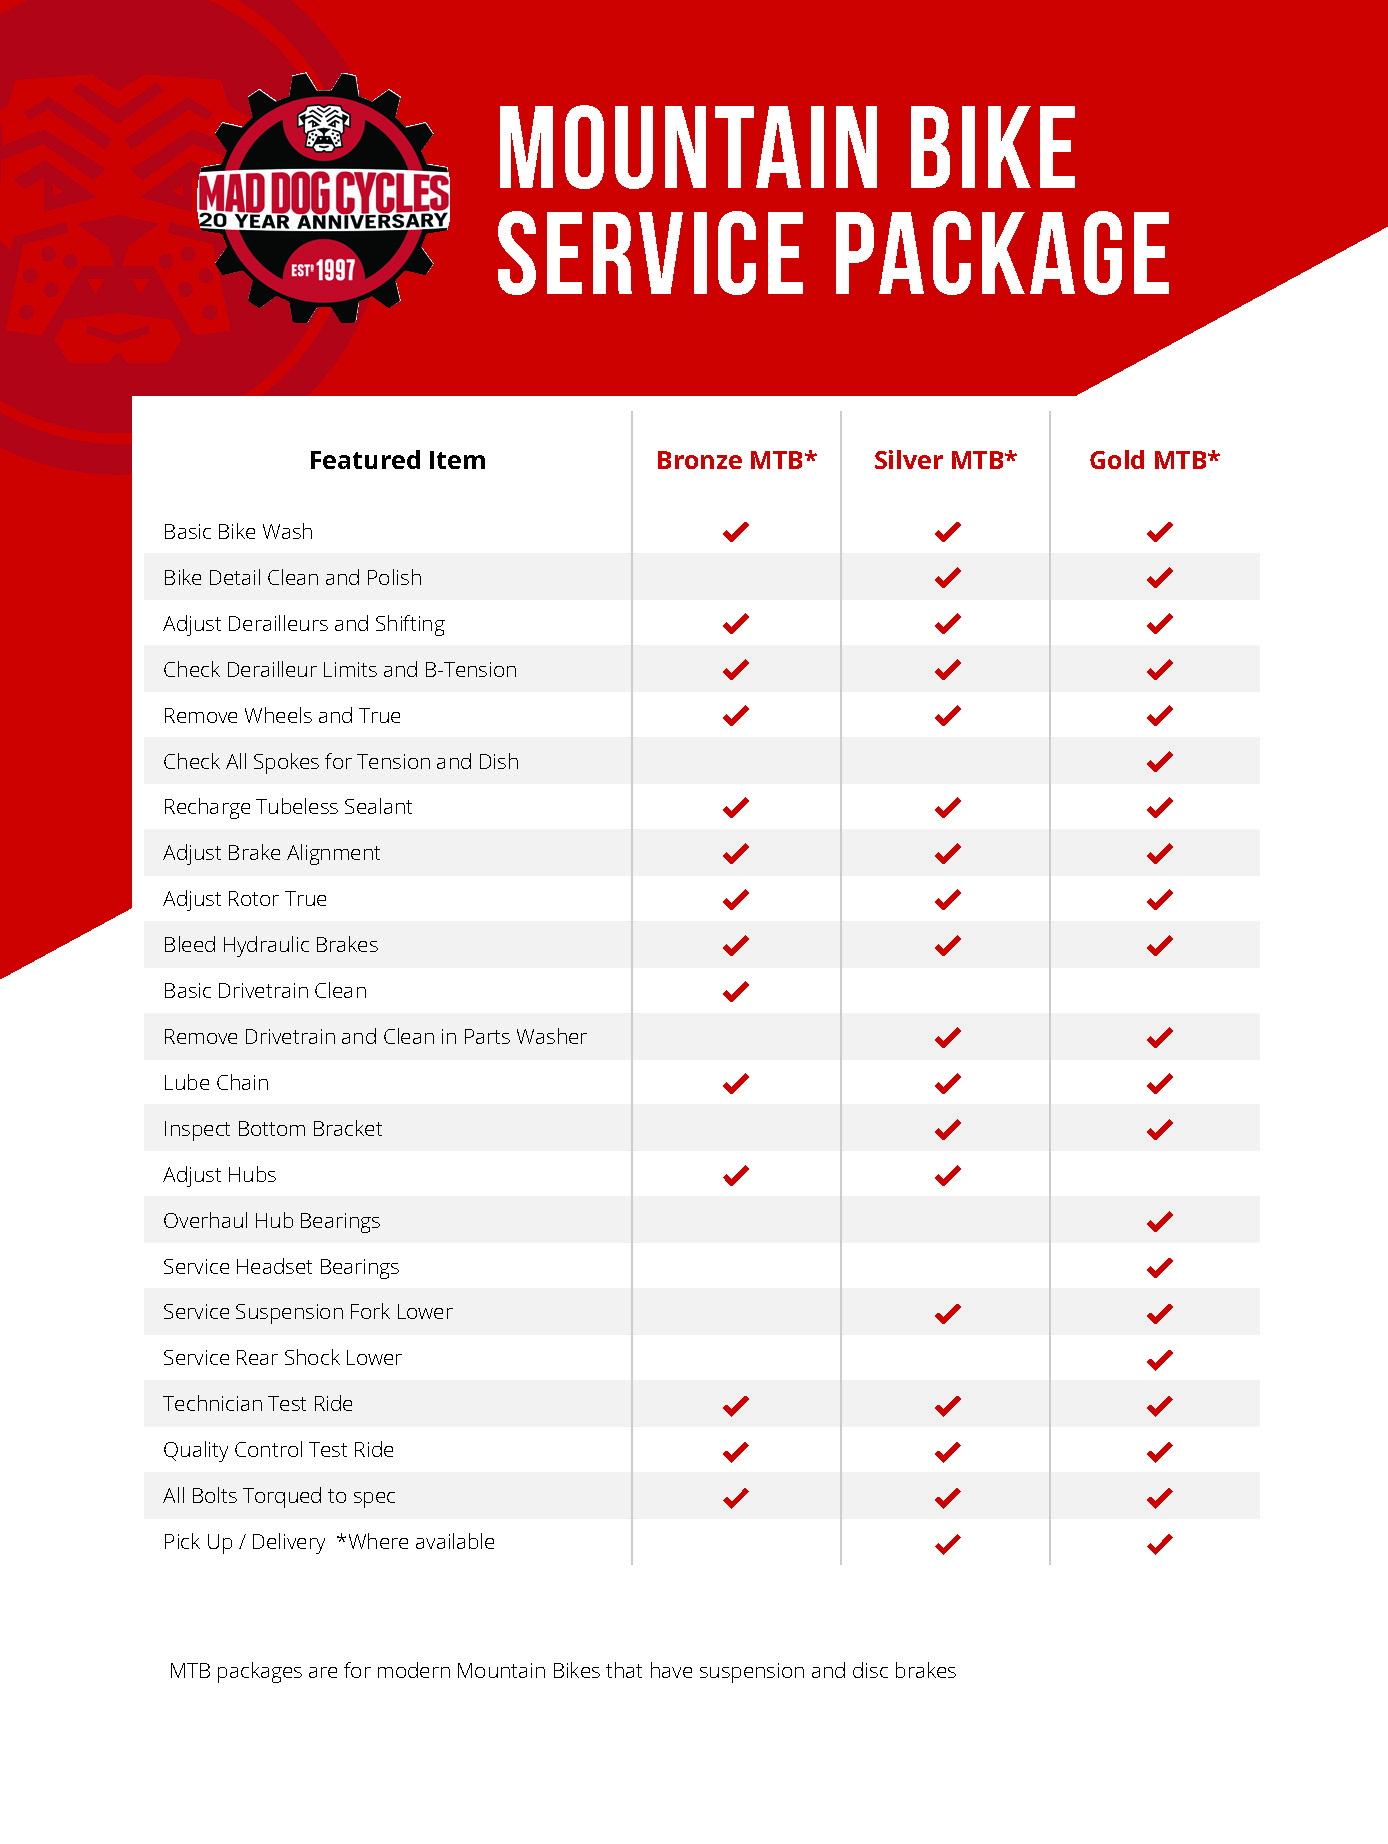 Mountain Bike Service Package Menu